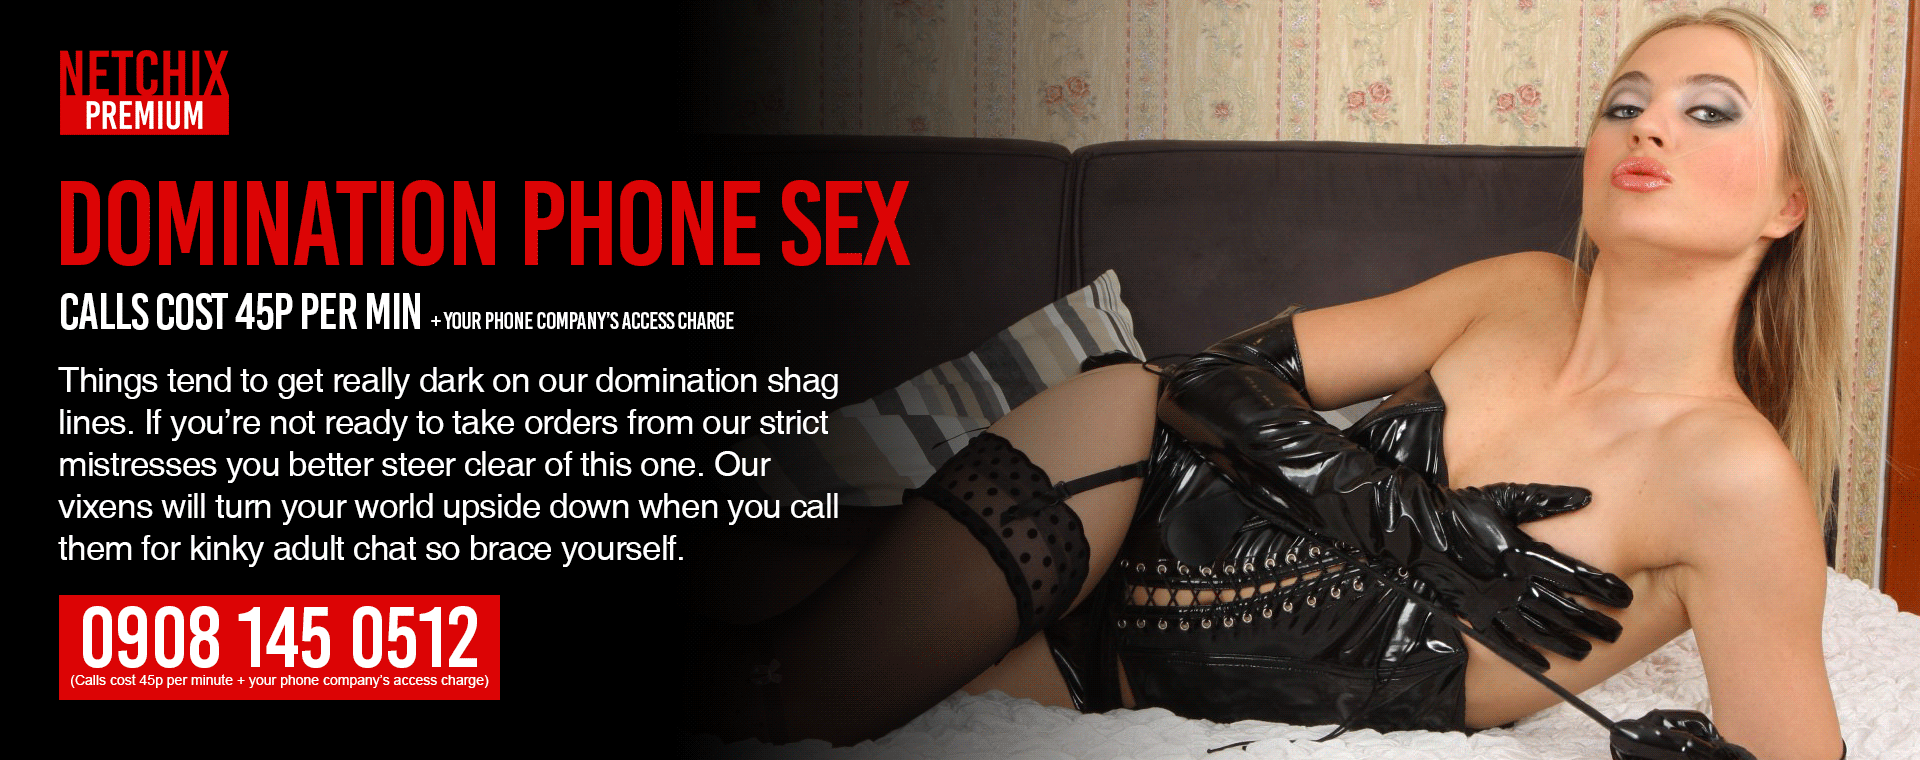 Domination phone lines